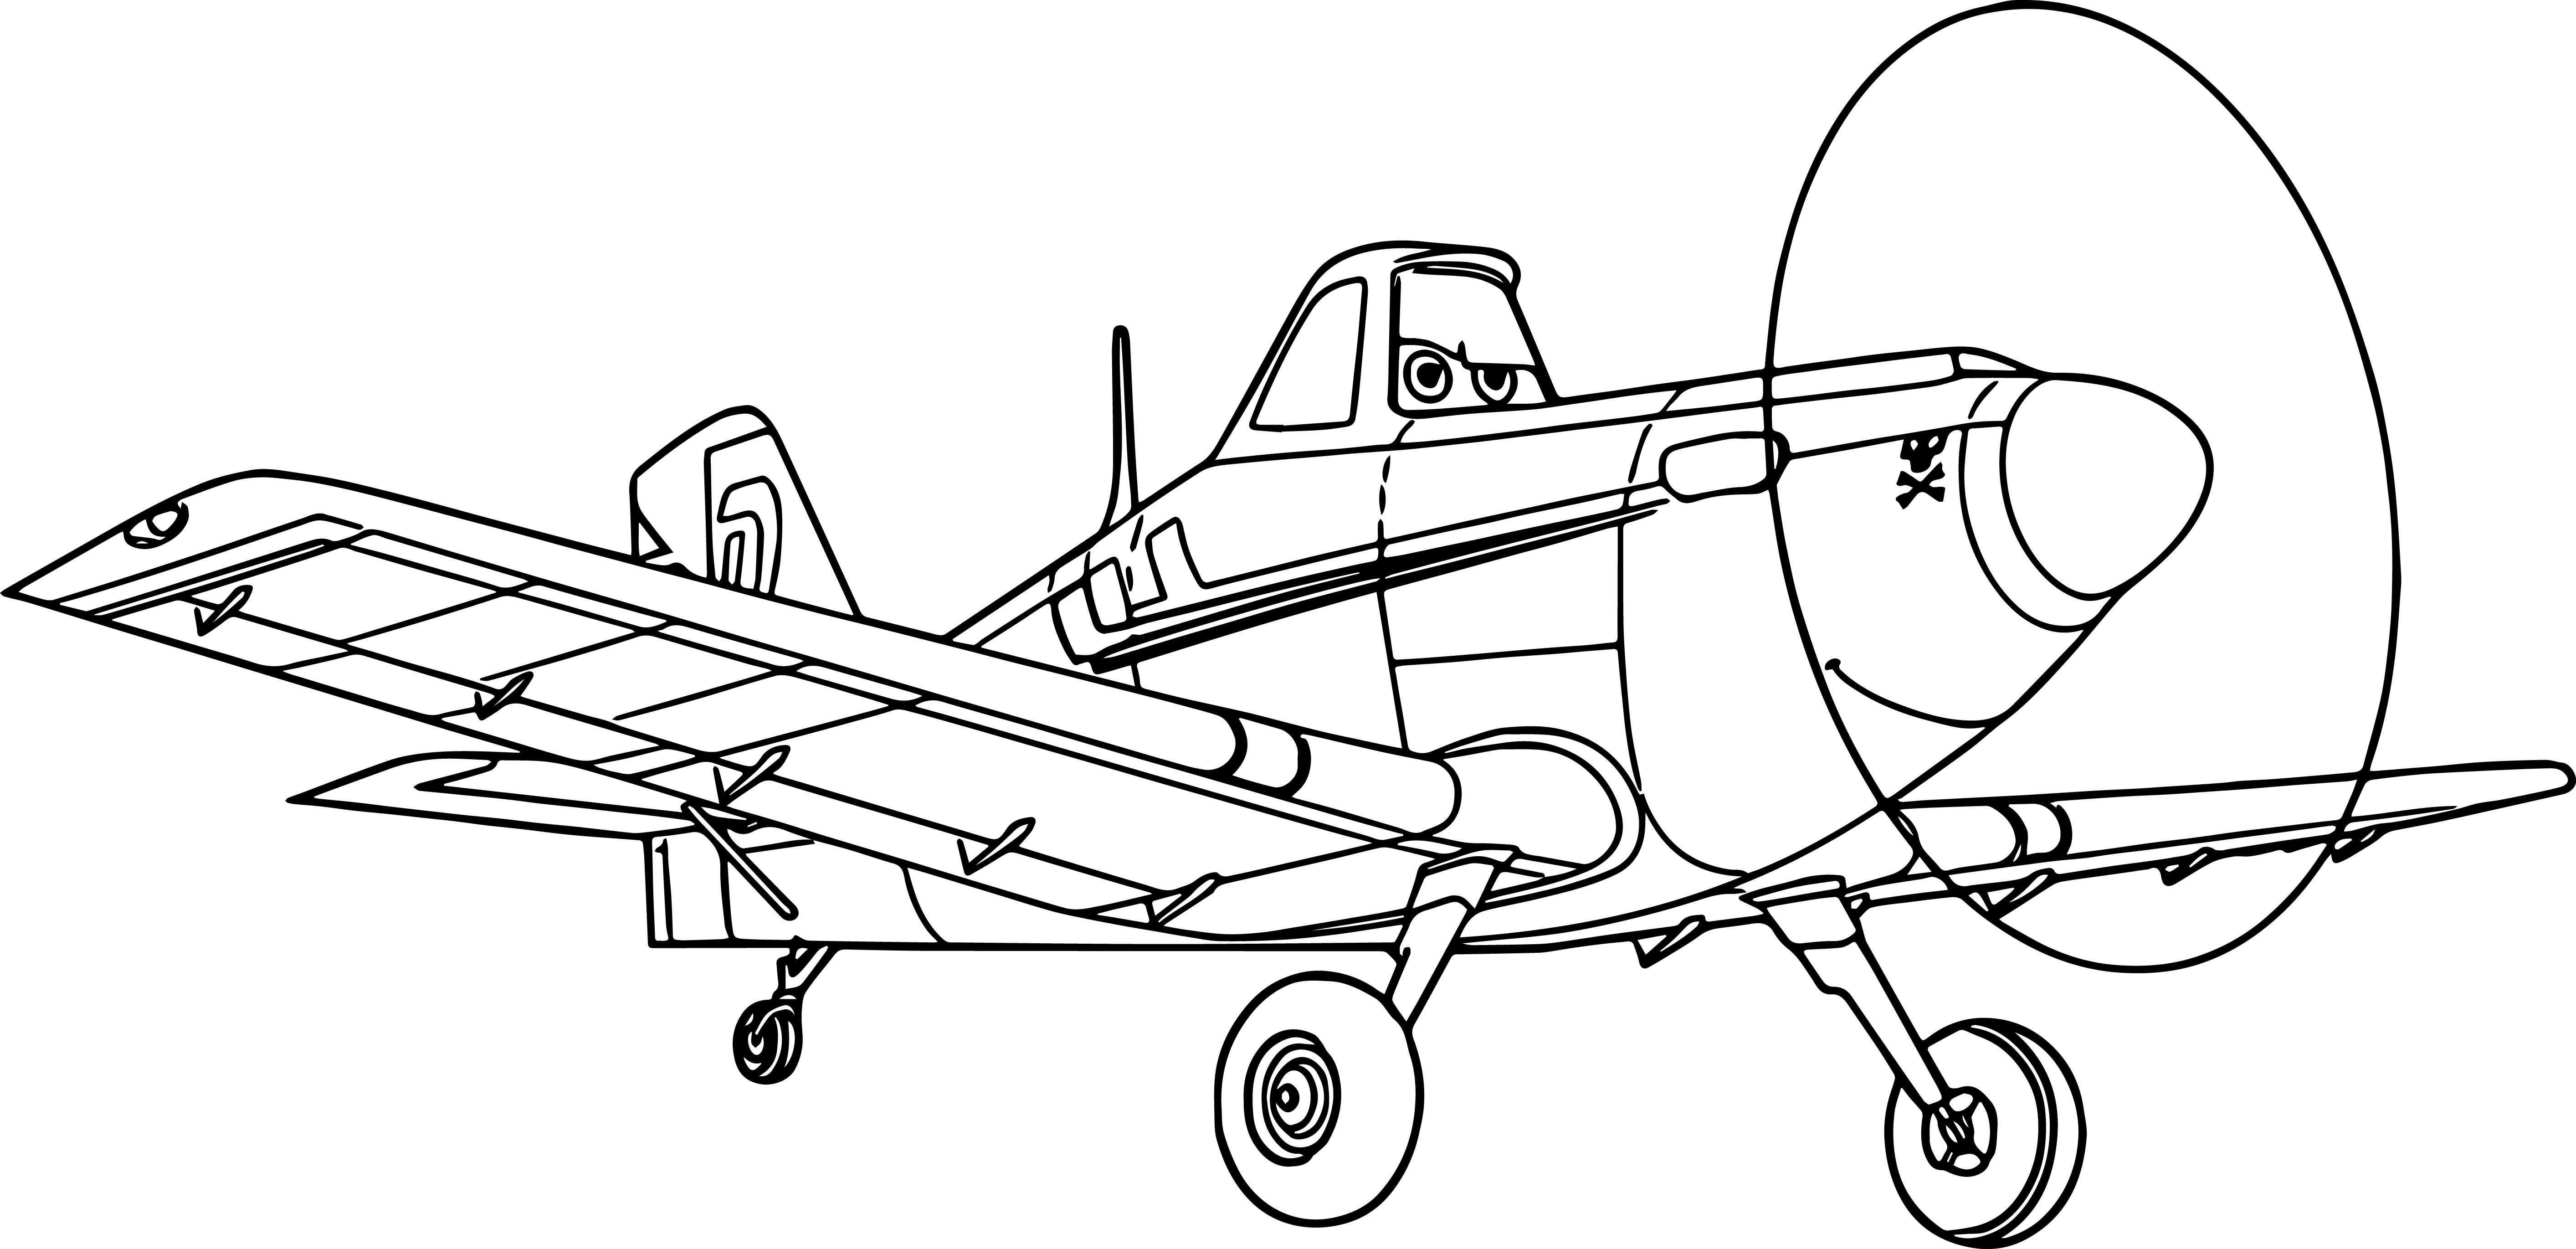 coloring pages airplanes airplane drawing free download on clipartmag airplanes coloring pages